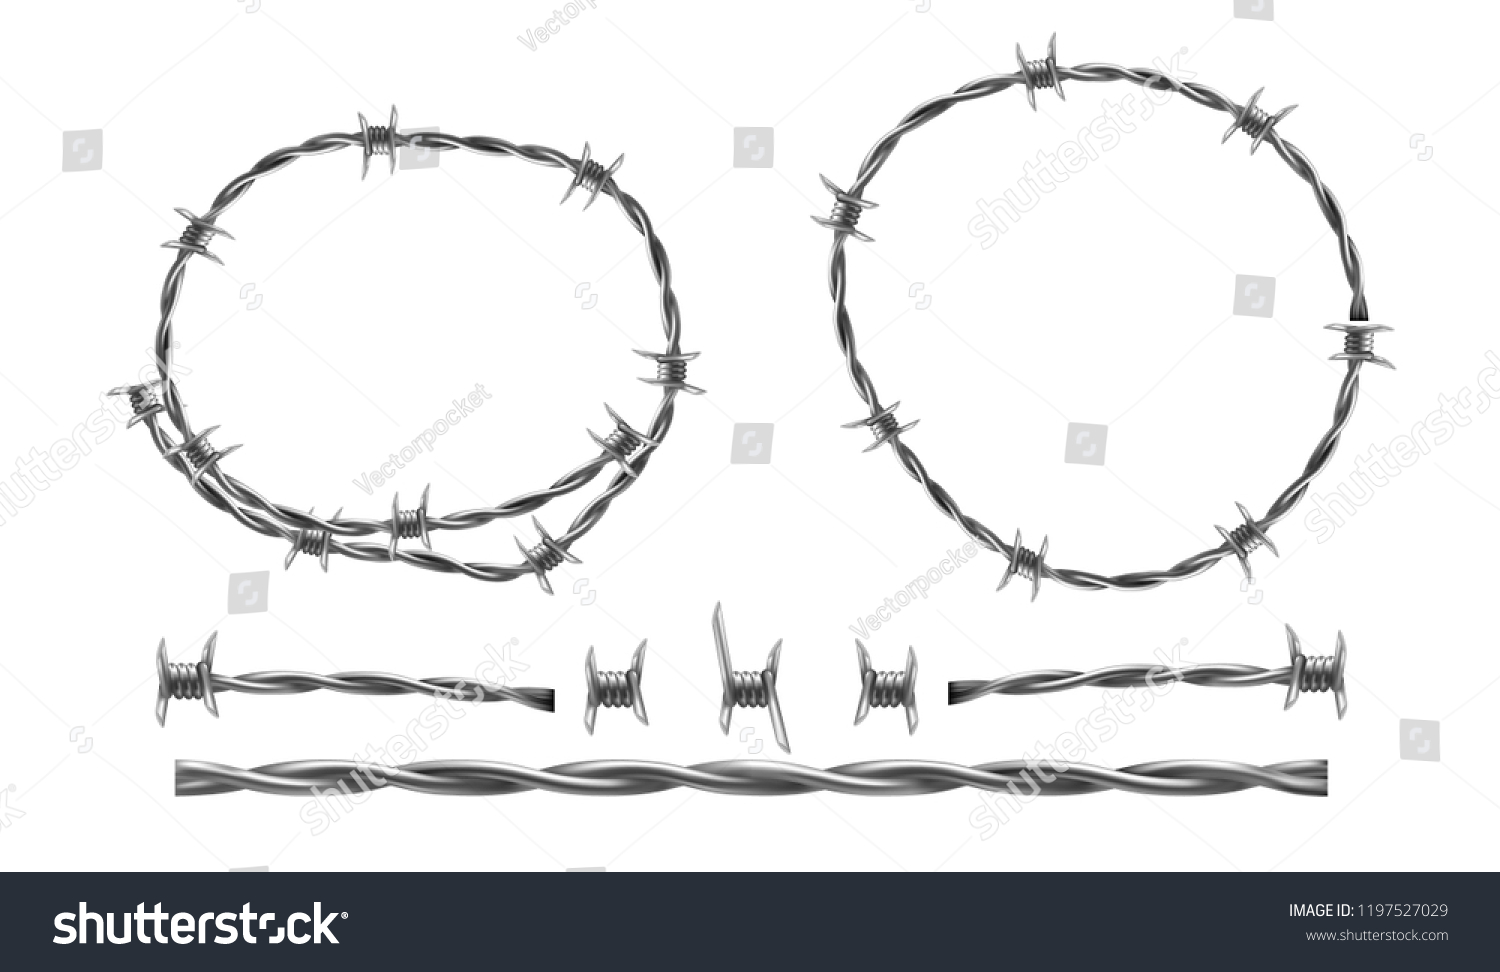 Barbed Wire Vector Realistic Illustration Separate Stock Wiring Diagram Elements Of Barbwire Isolated On White Background Twisted